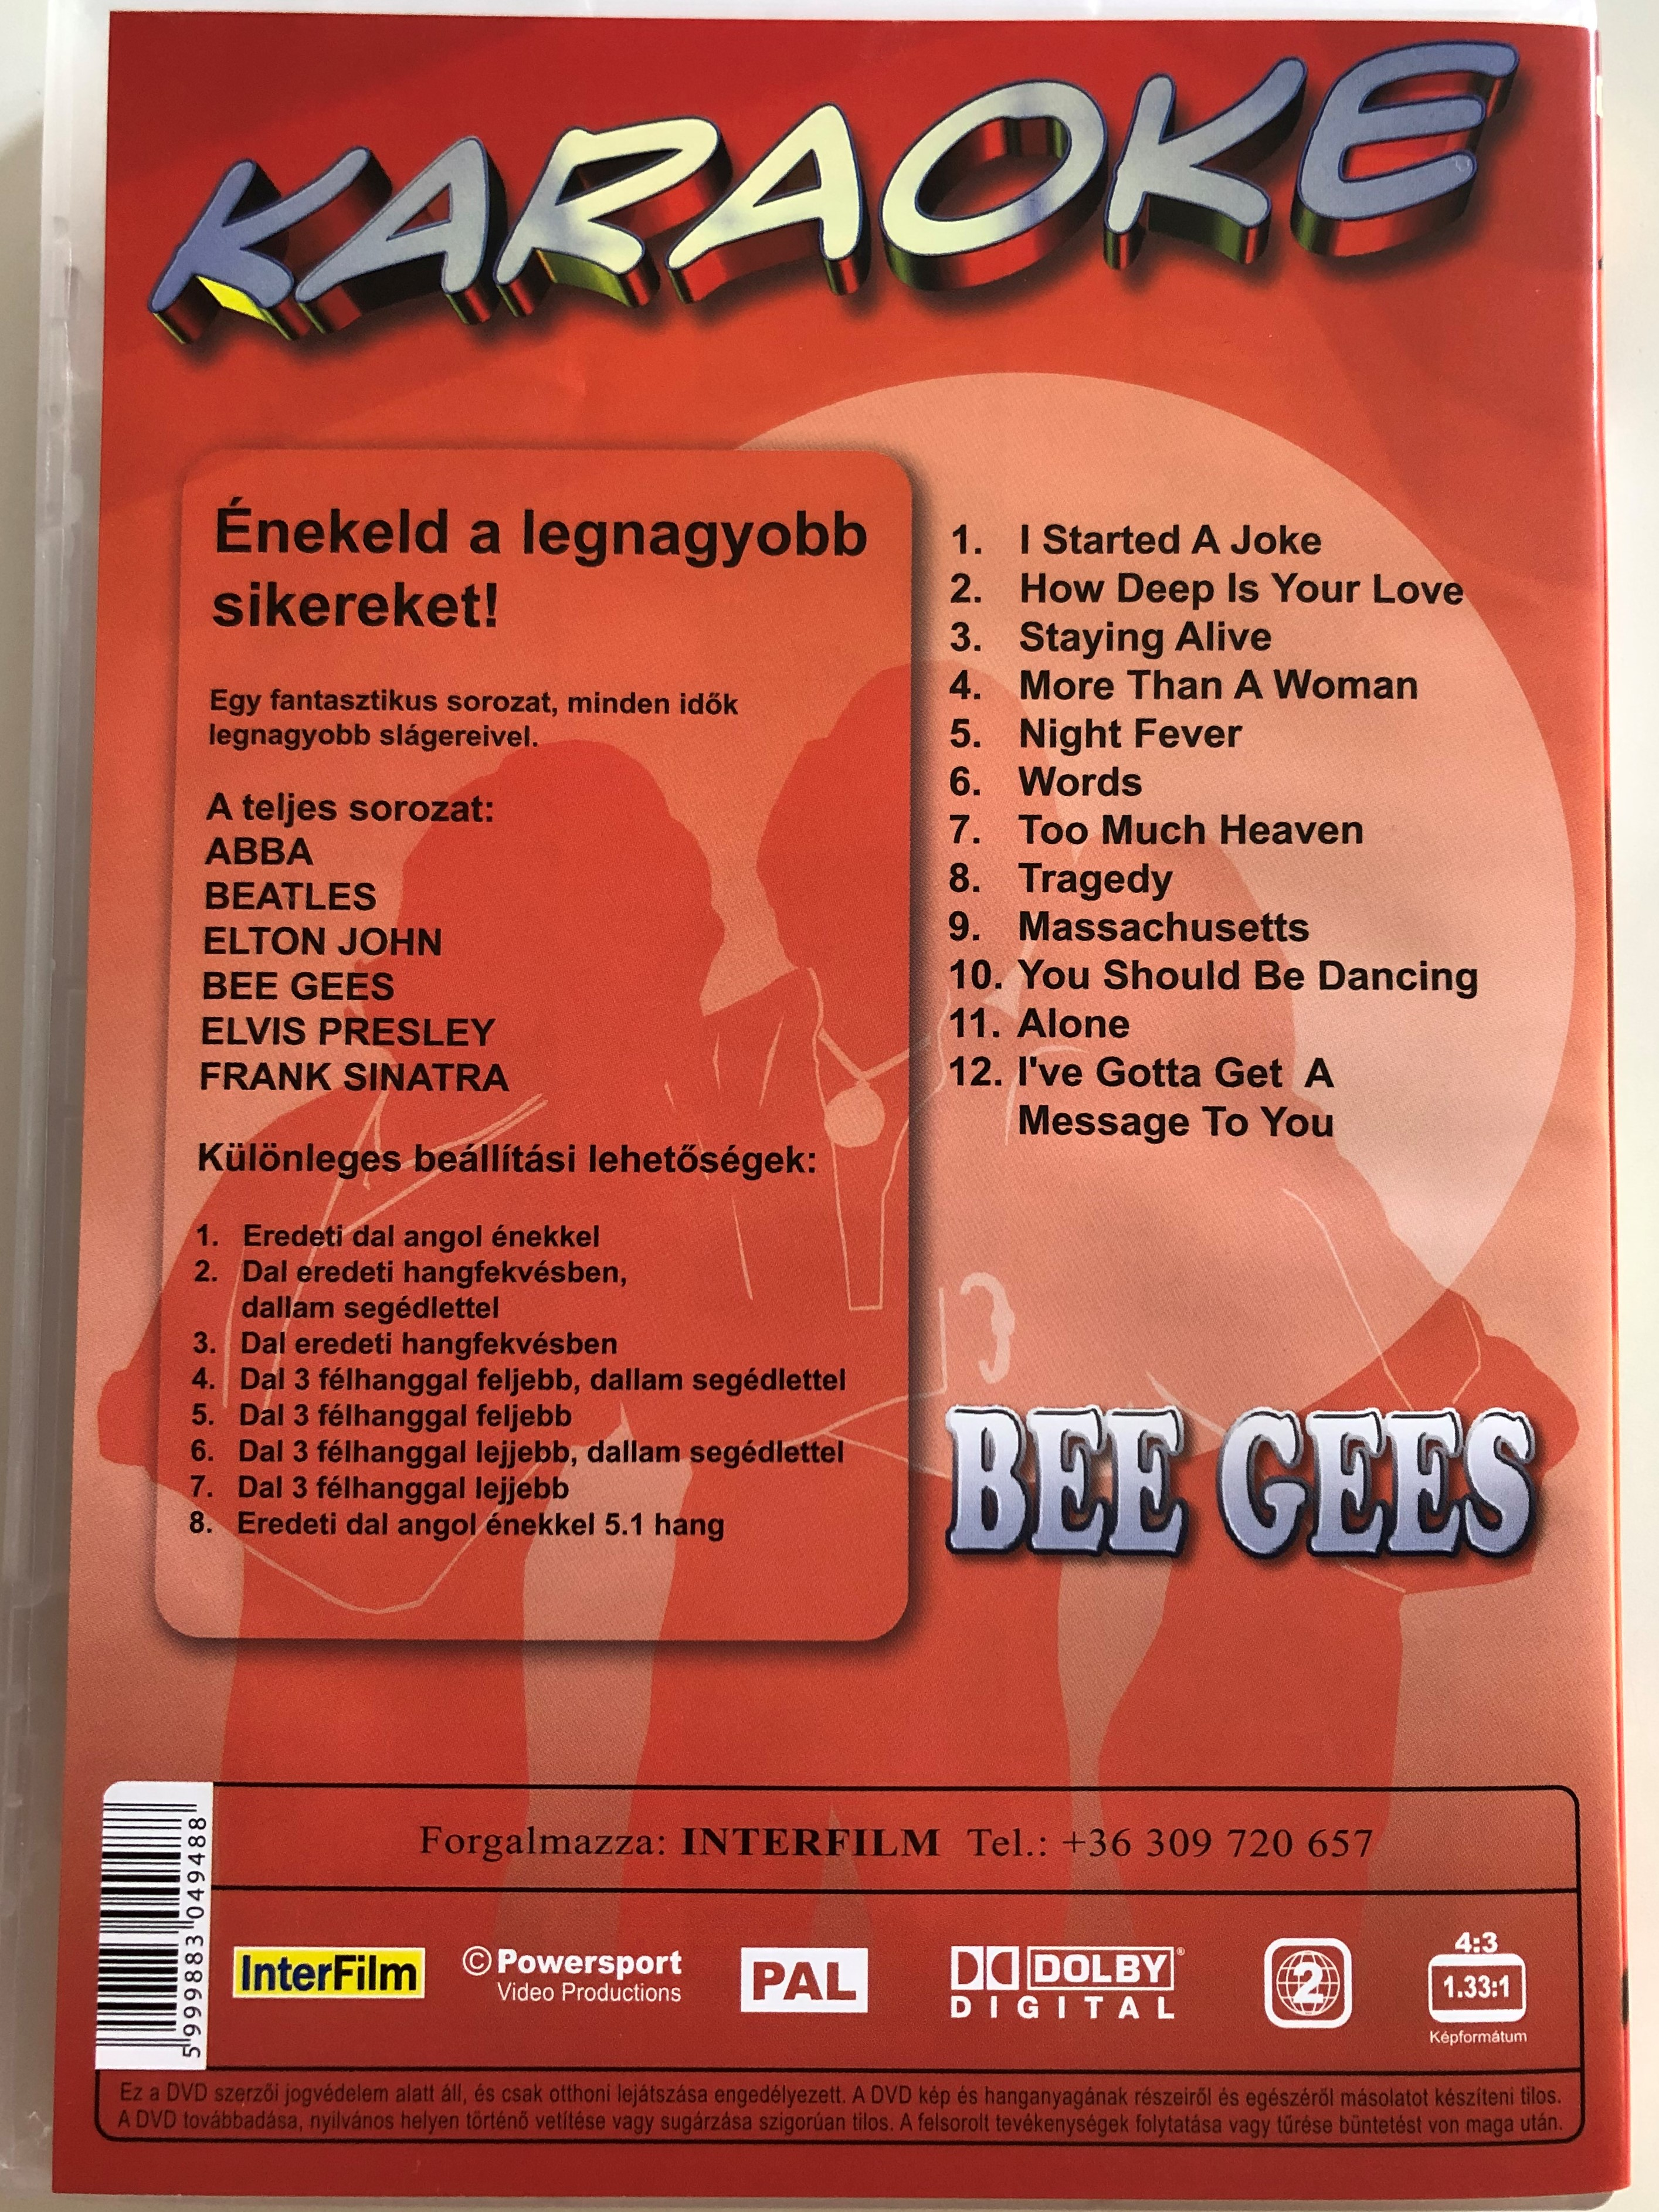 bee-gees-karaoke-dvd-staying-alive-night-fever-tragedy-s-az-sszes-sl-ger-sing-the-greatest-hits-2-.jpg